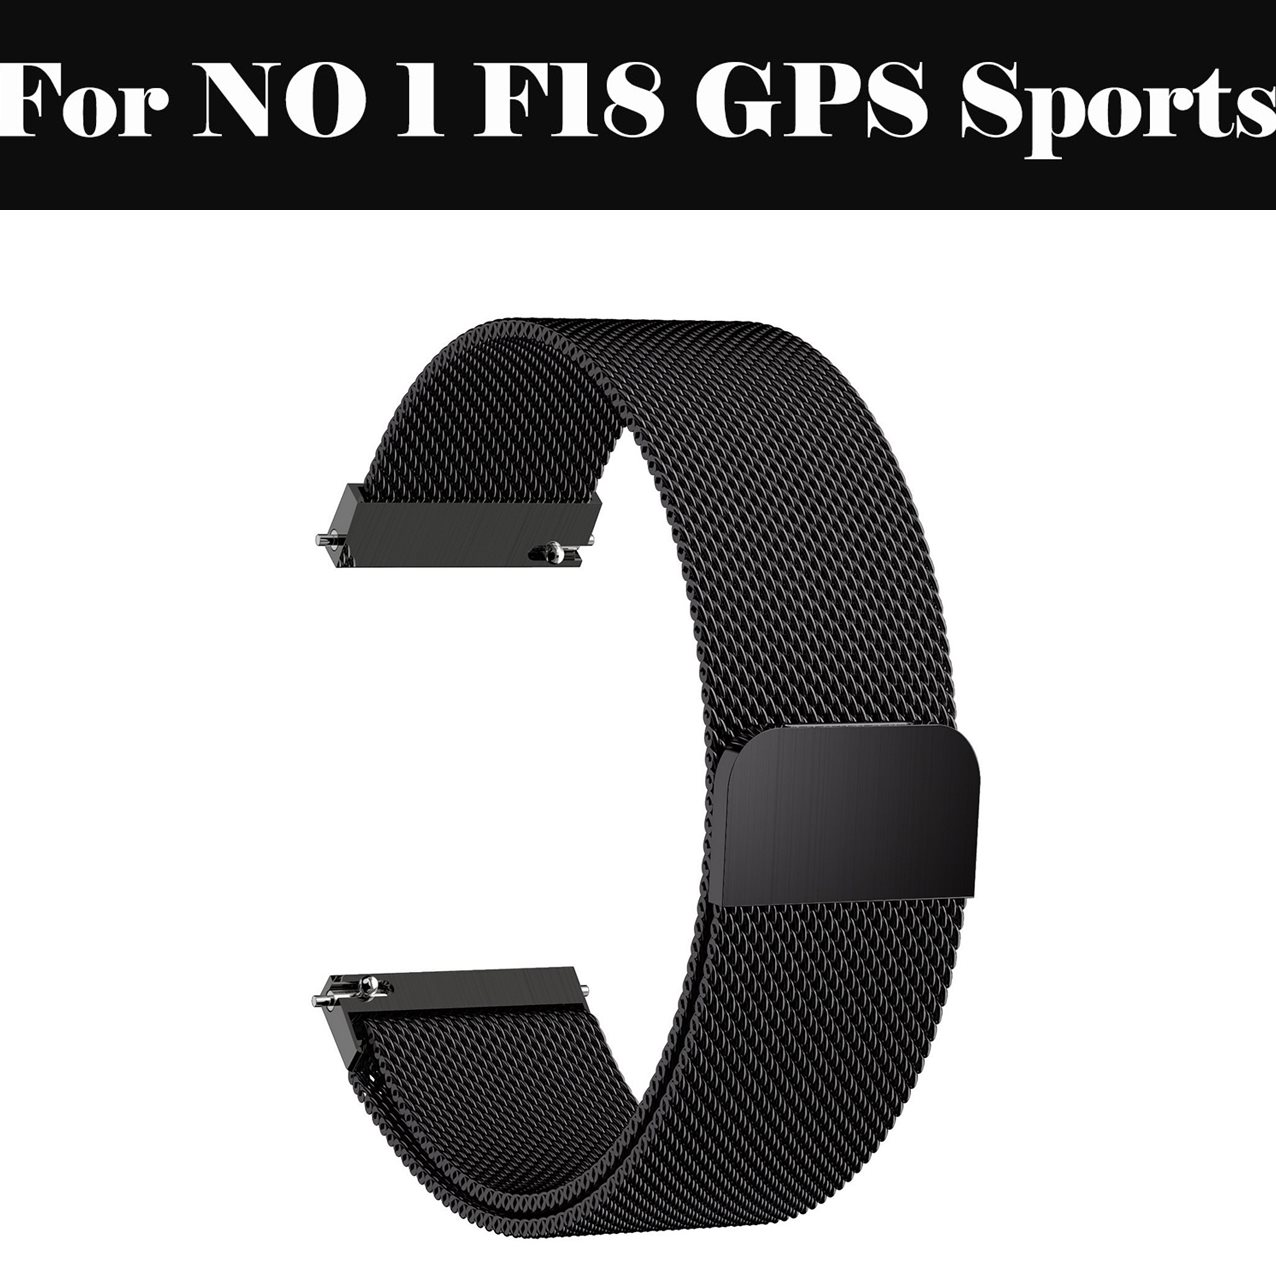 Milanese Loop strap Watch band 14mm 16MM 18MM 20MM 22MM Stainless Steel Bracelet For NO 1 F18 GPS Sports image